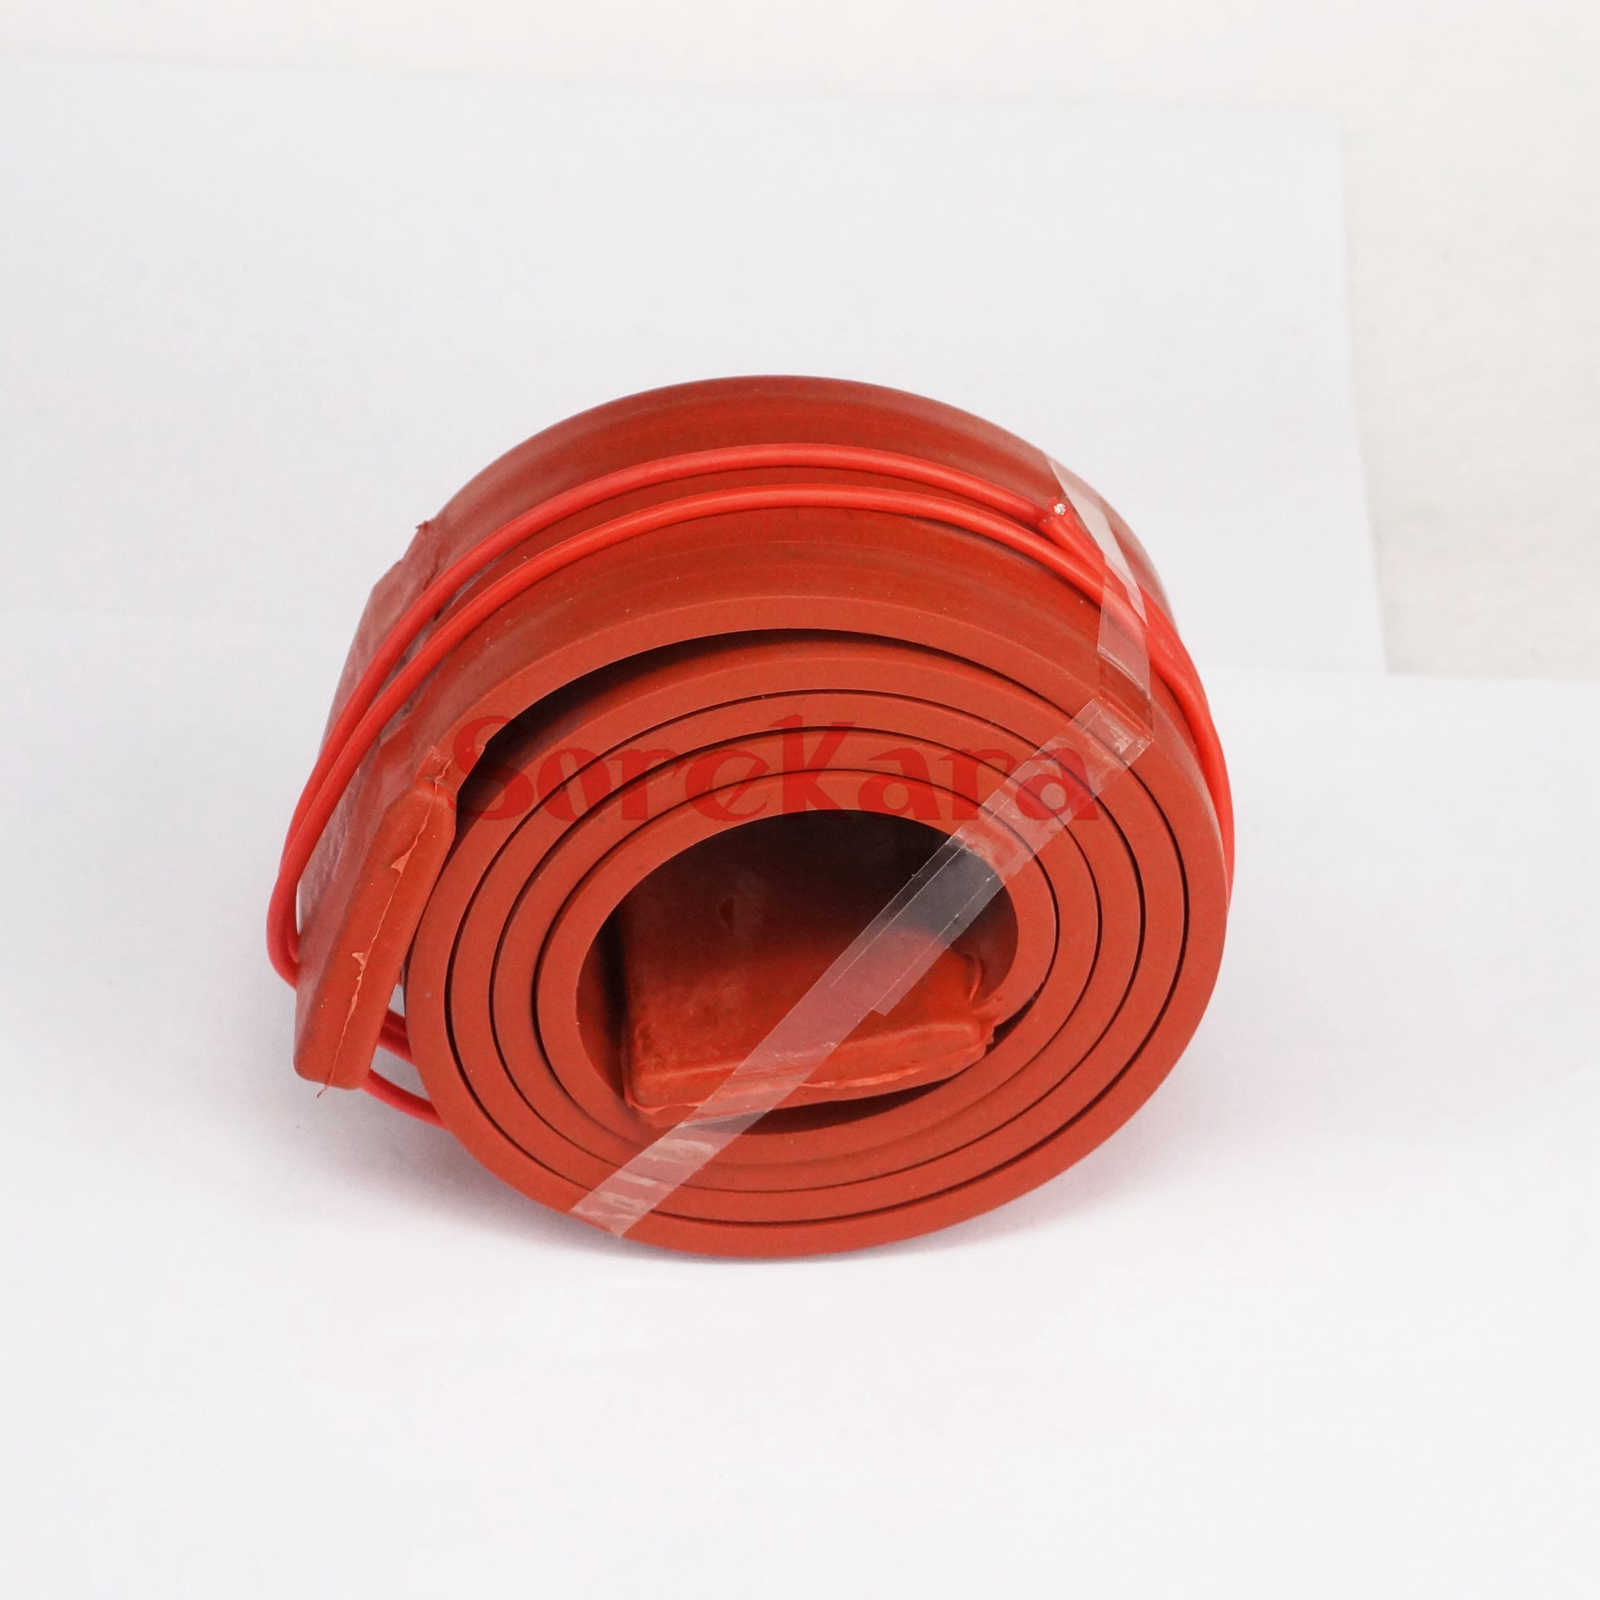 110v ac 50x1000mm 150w waterproof flexible silicone rubber heater heating belt unfreezer for pipeline electrical wires in wires cables from lights  [ 1600 x 1600 Pixel ]